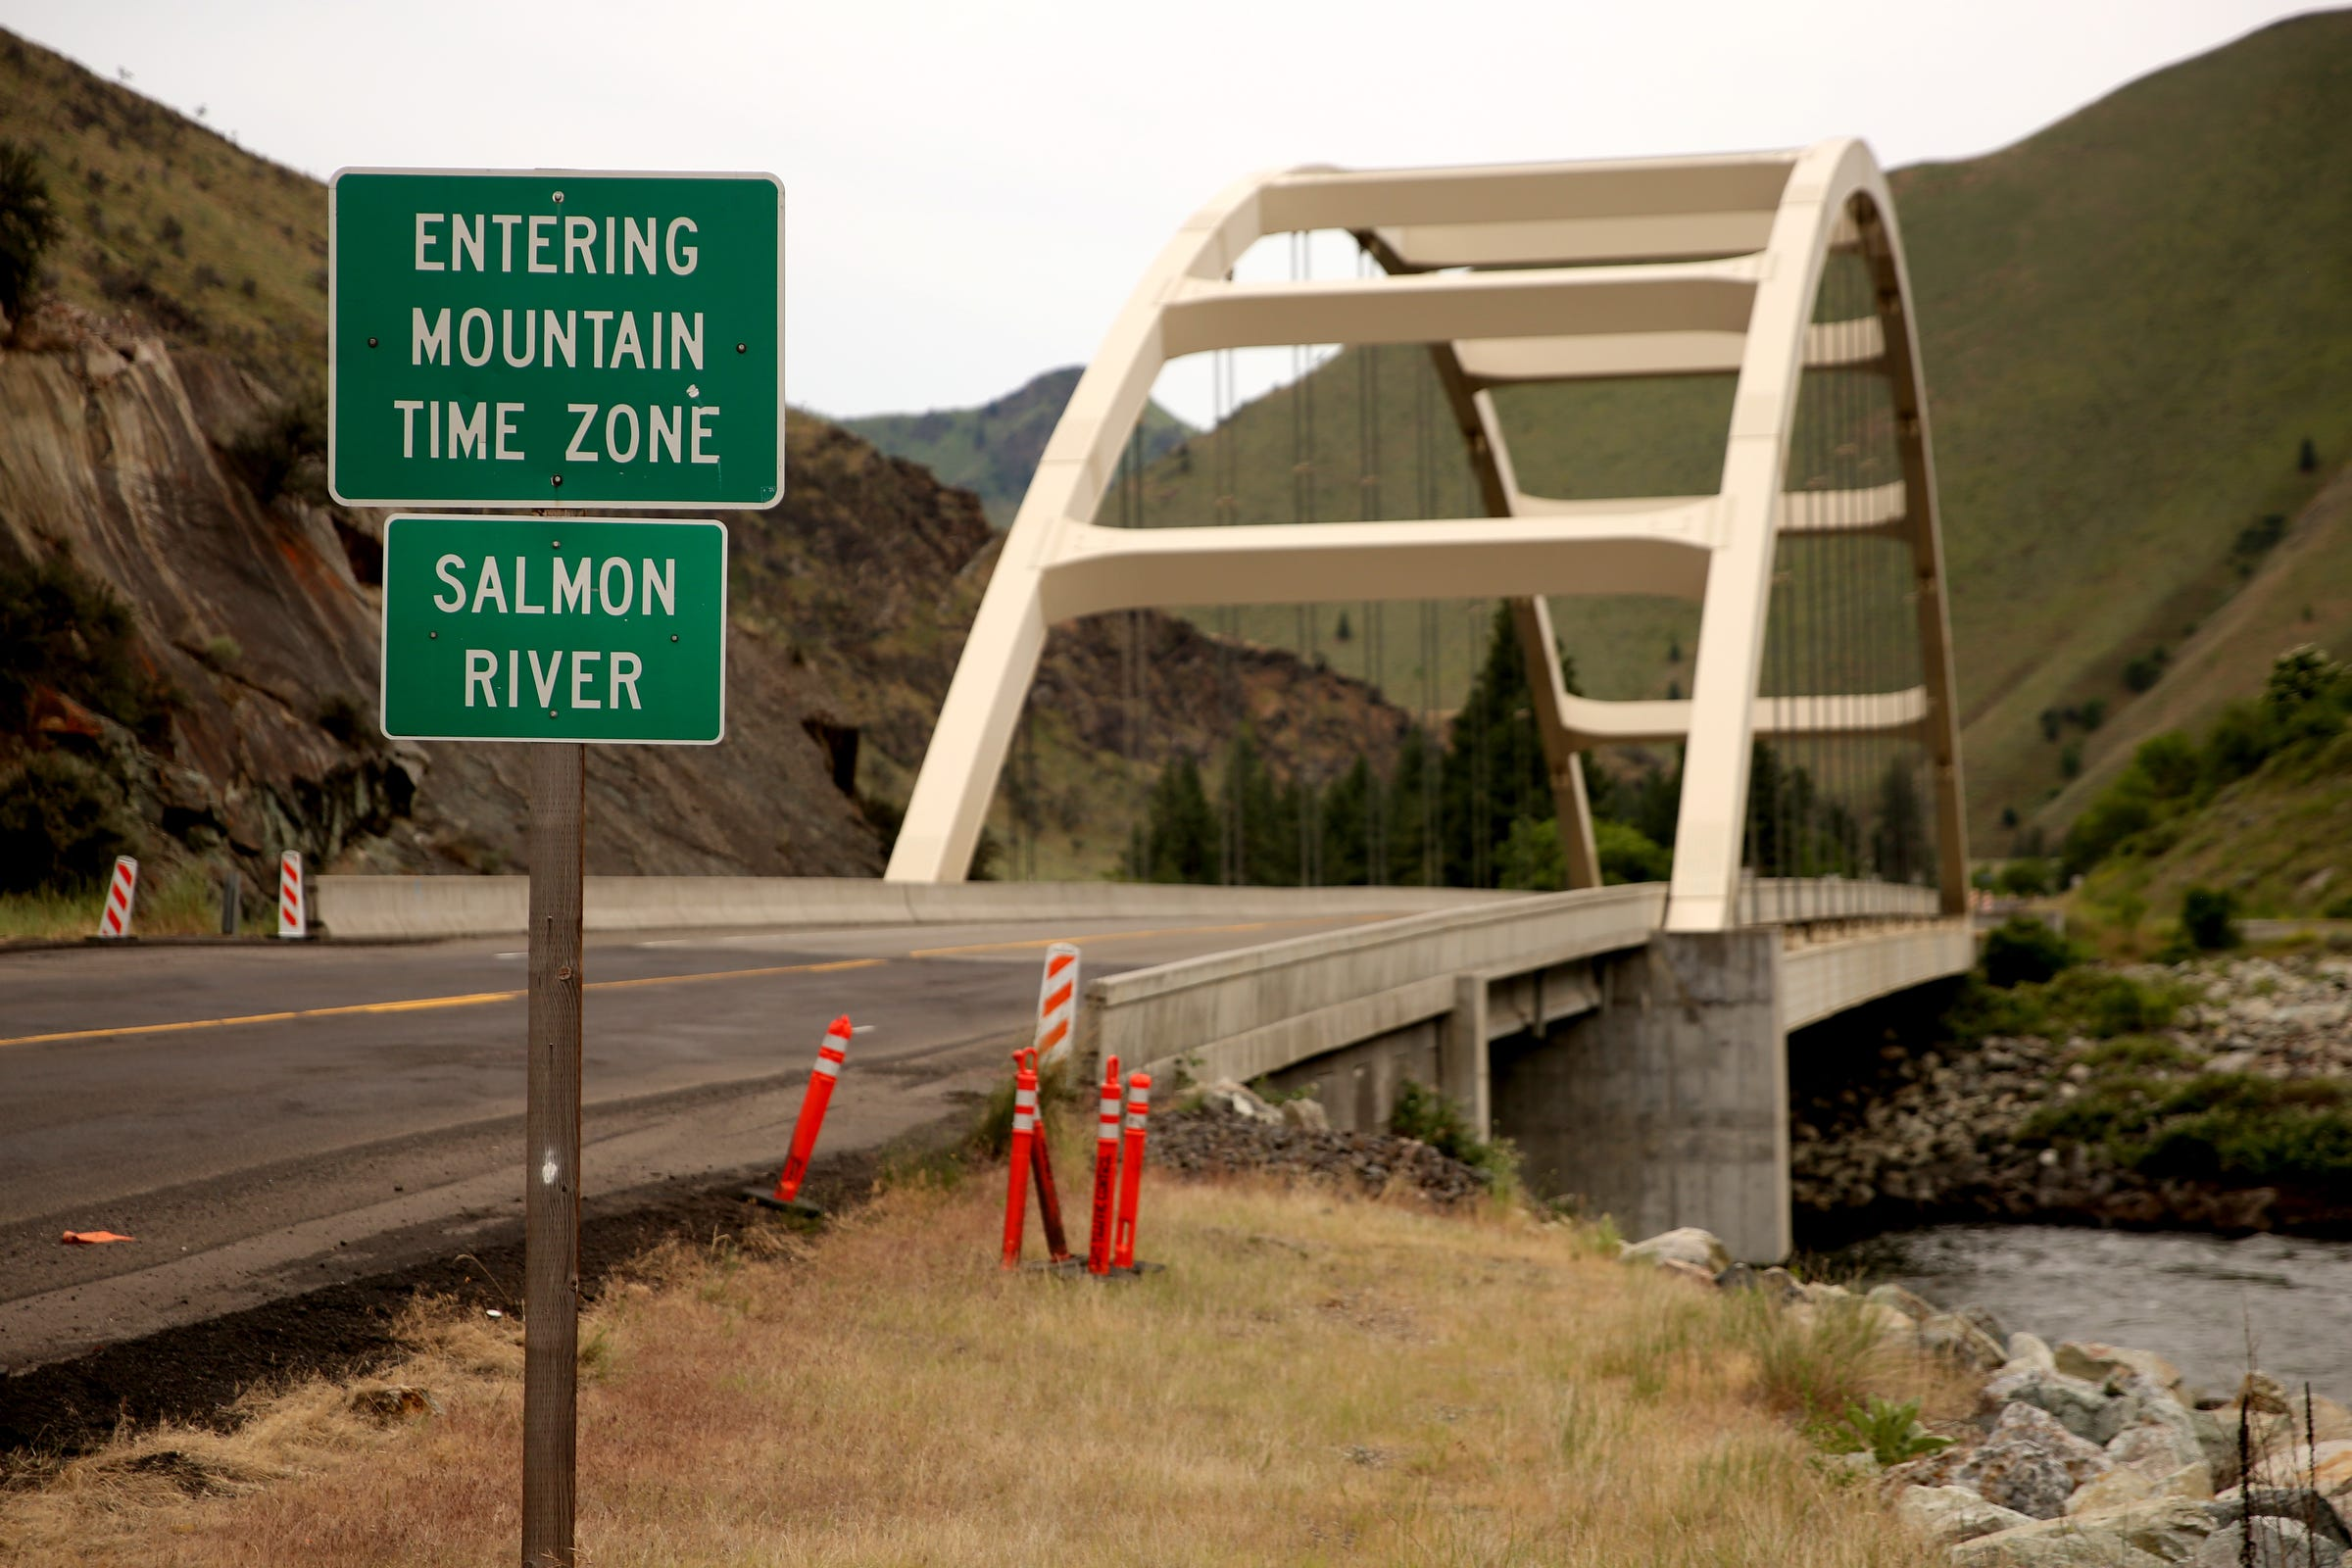 The Salmon River divides the Mountain and Pacific time zones at Riggins, Idaho on June 12, 2019.